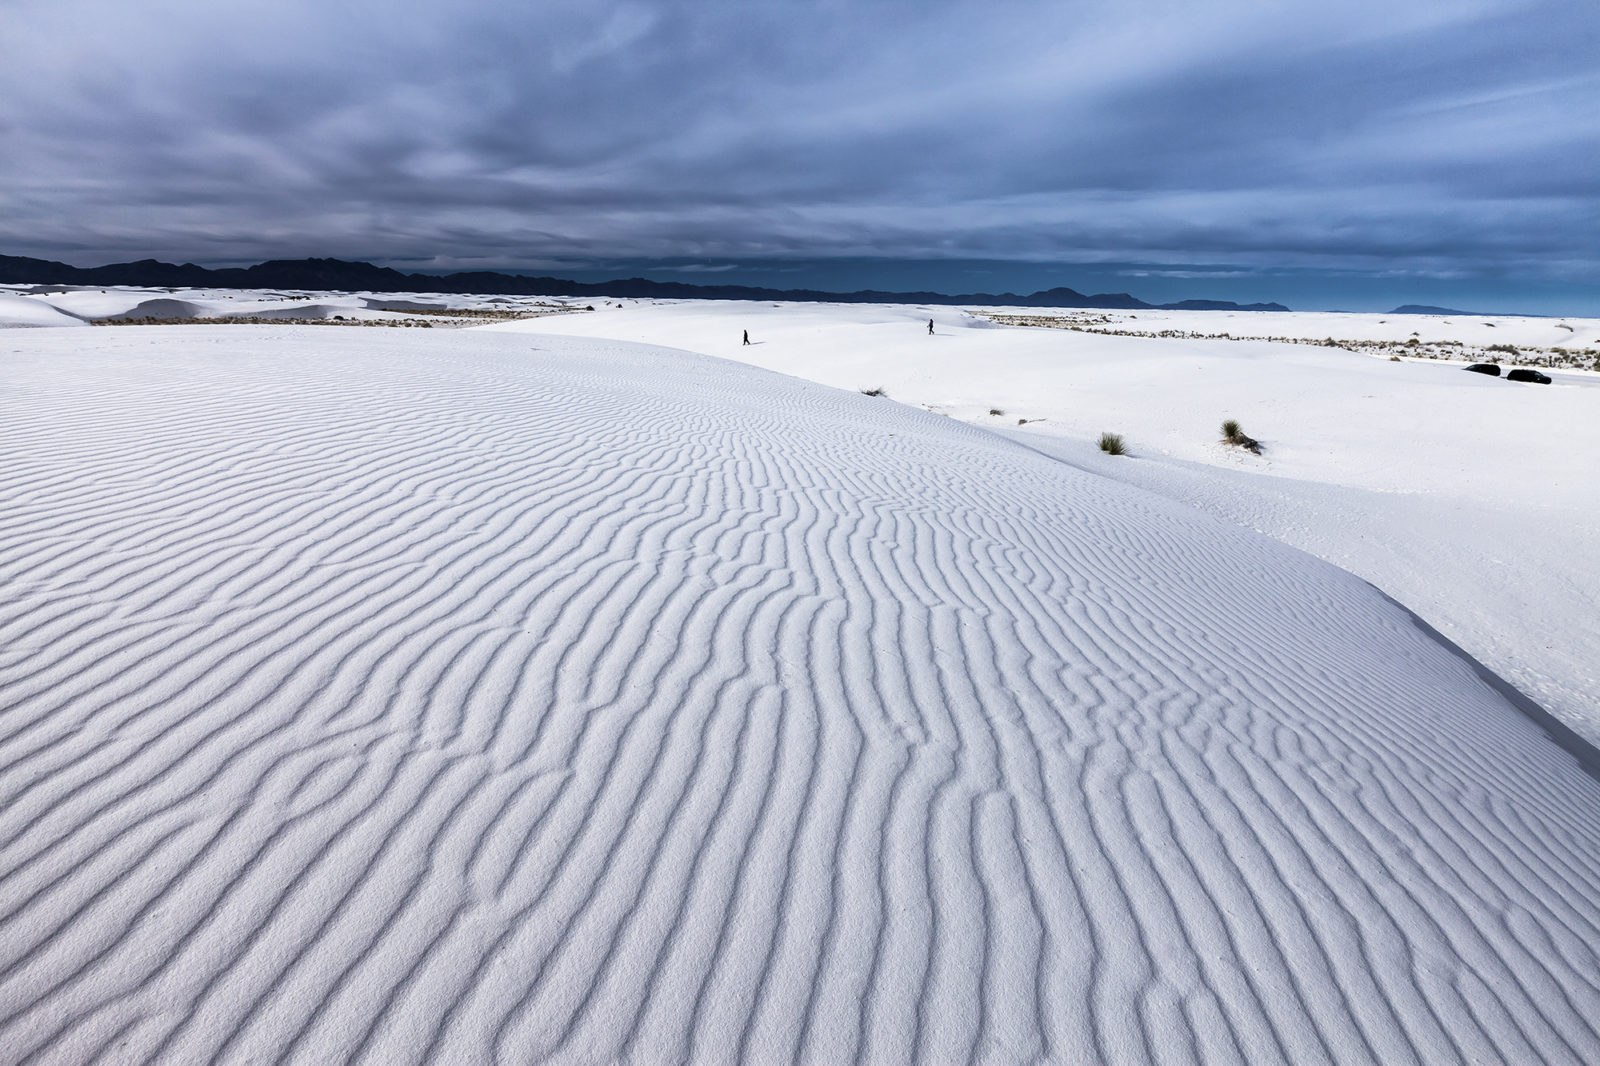 Dreaming of White Sands